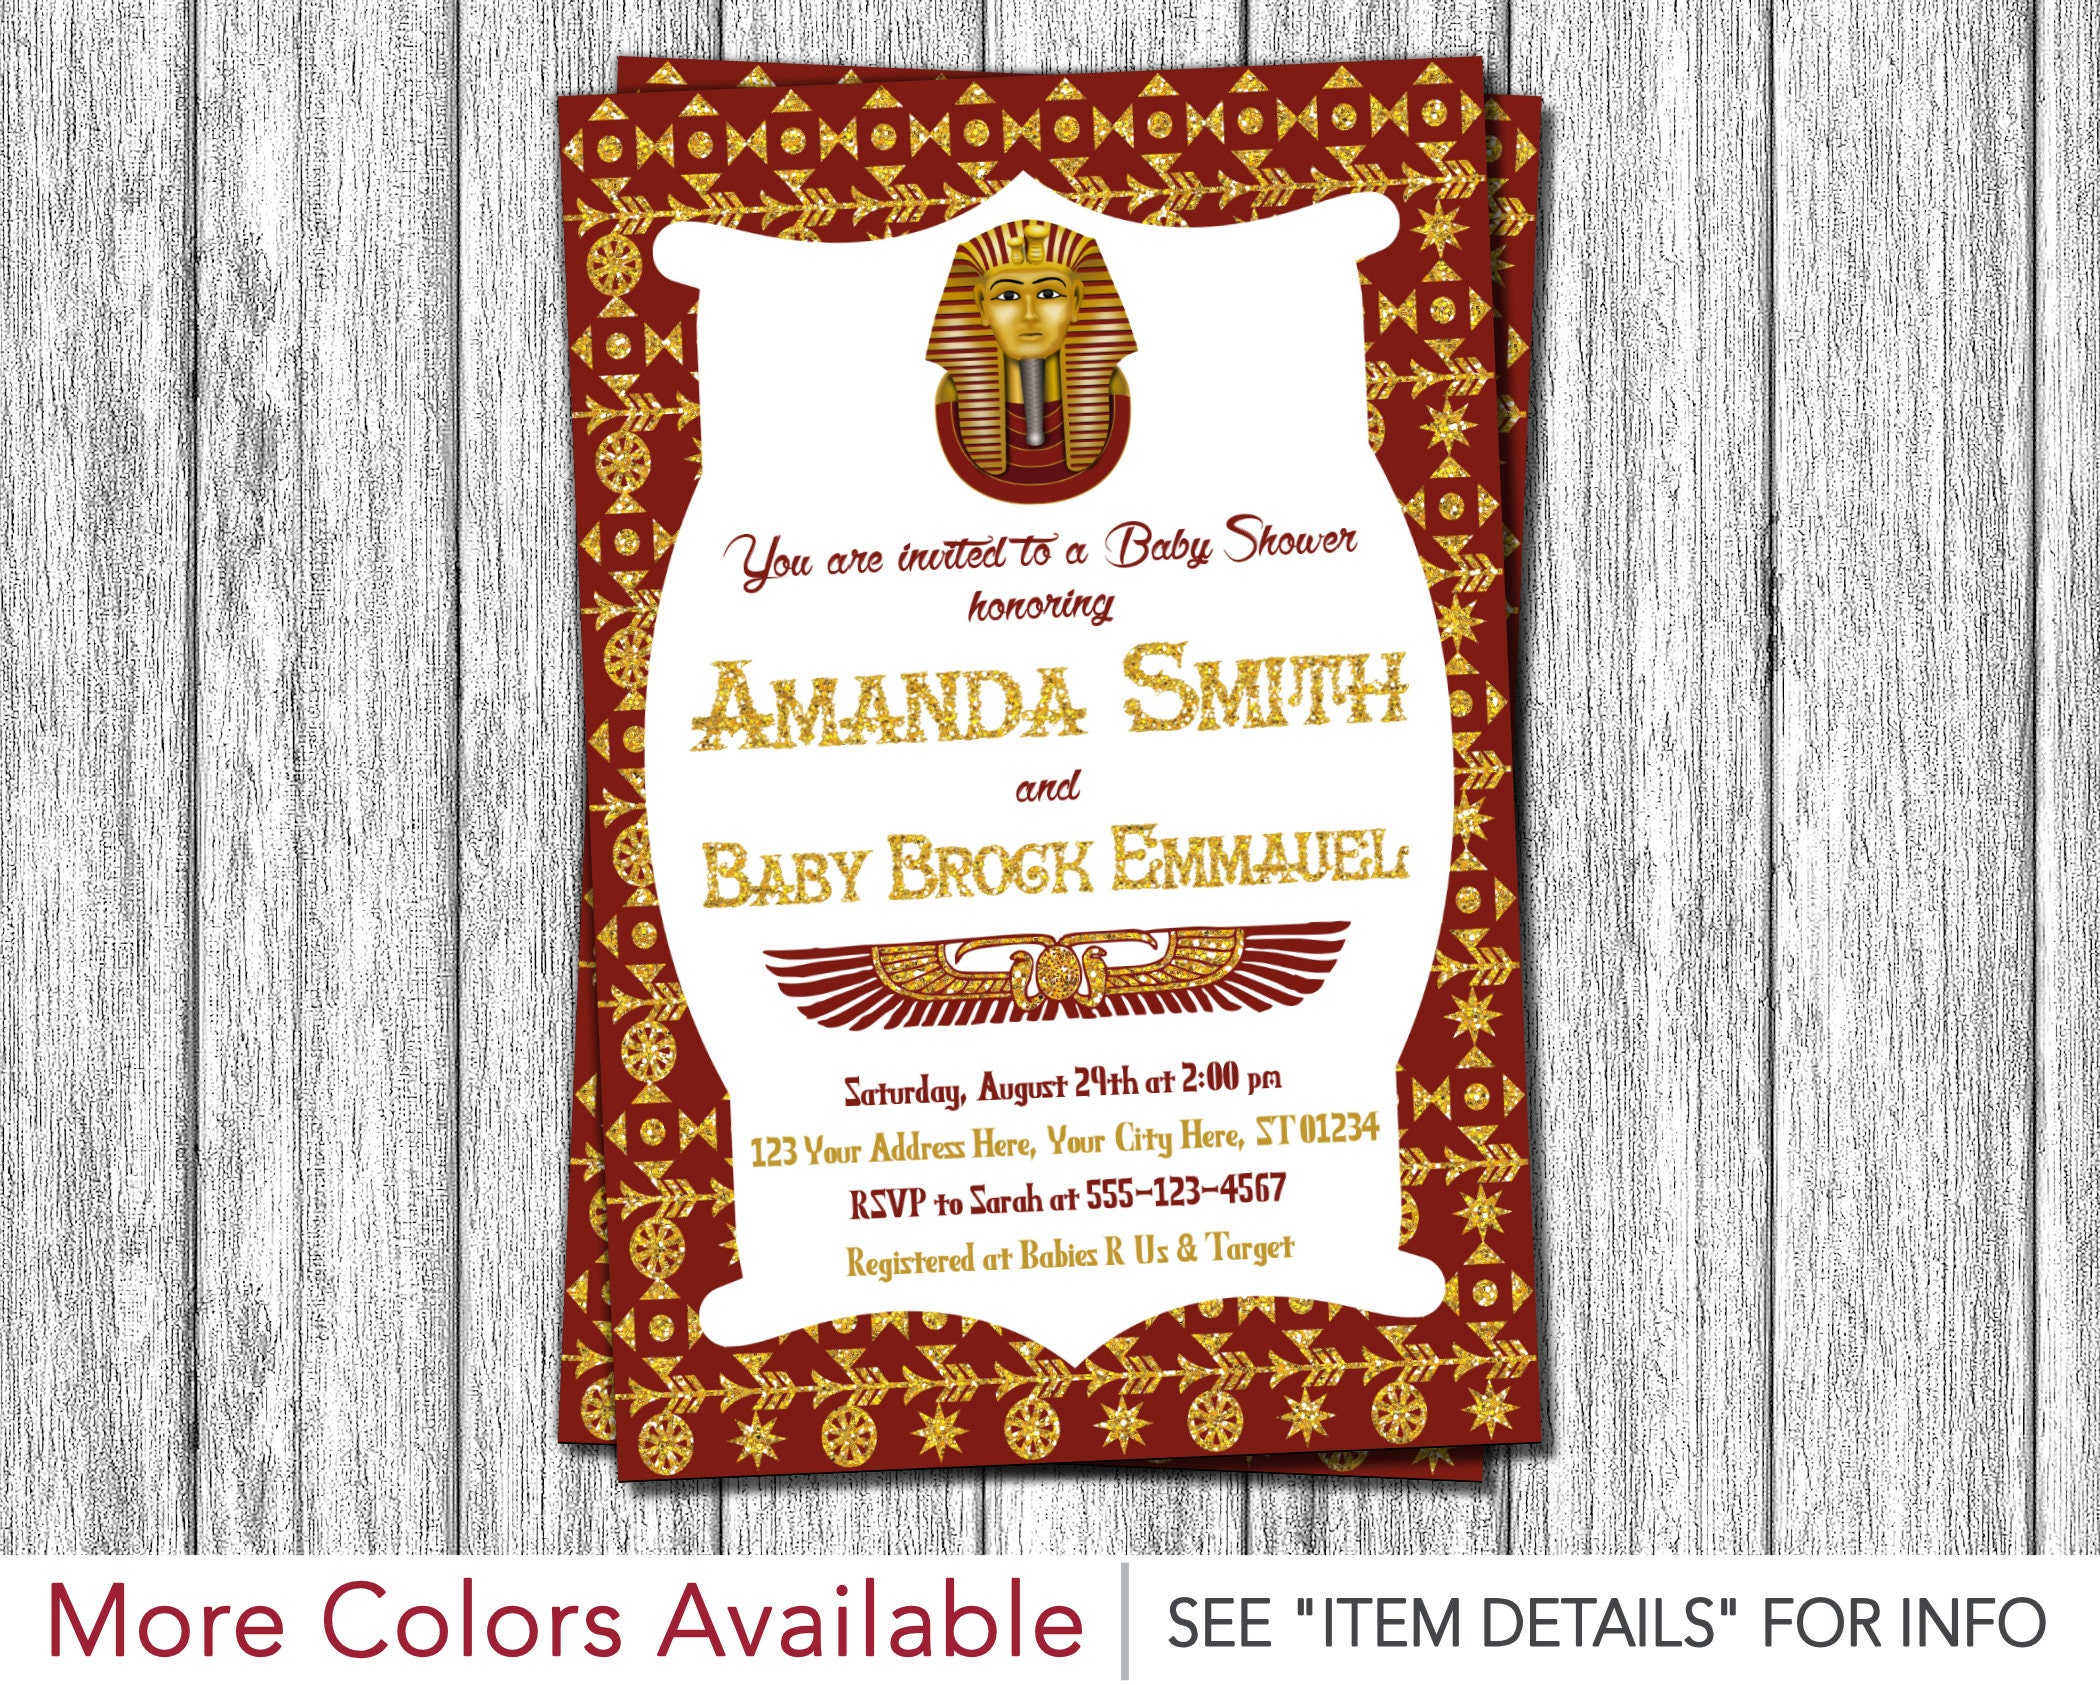 Egyptian Baby Shower Invitation Egyptian Theme Invitation | Etsy